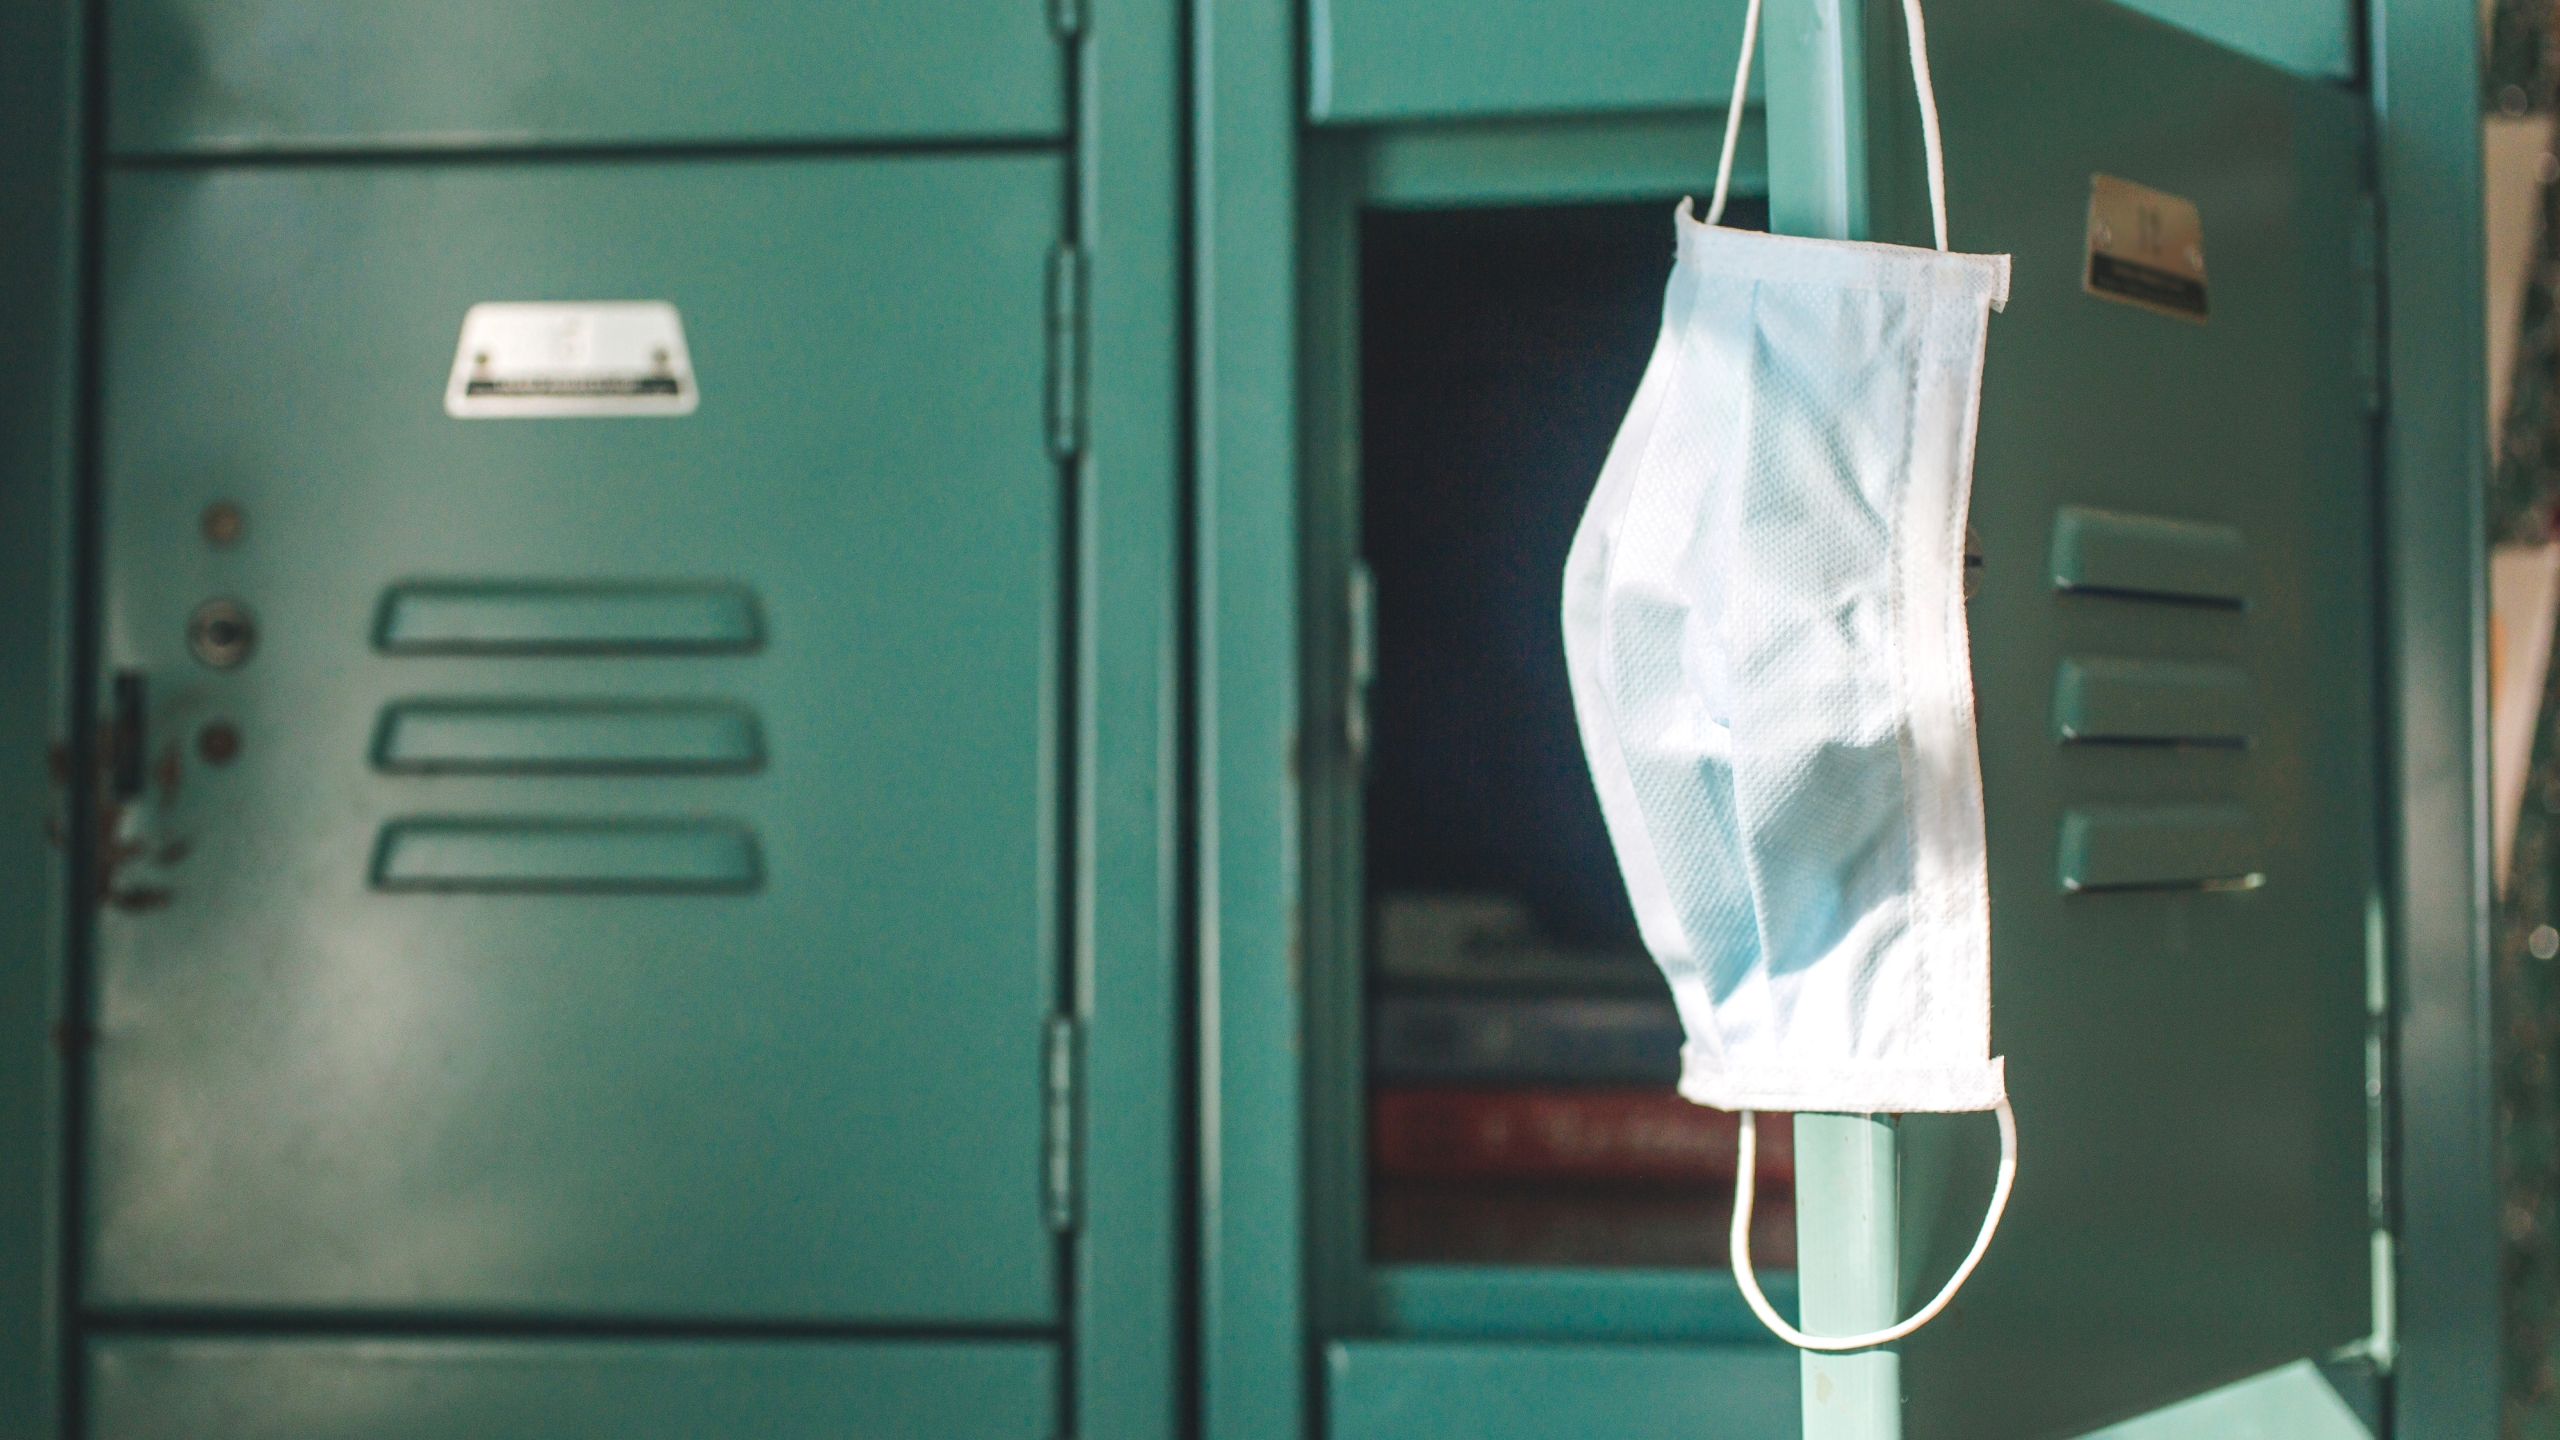 Surgical mask hanging inside school on locker. School re-openings were a controversial part of the Coronavirus pandemic, COVID-19 pandemic during 2020 and 2021.